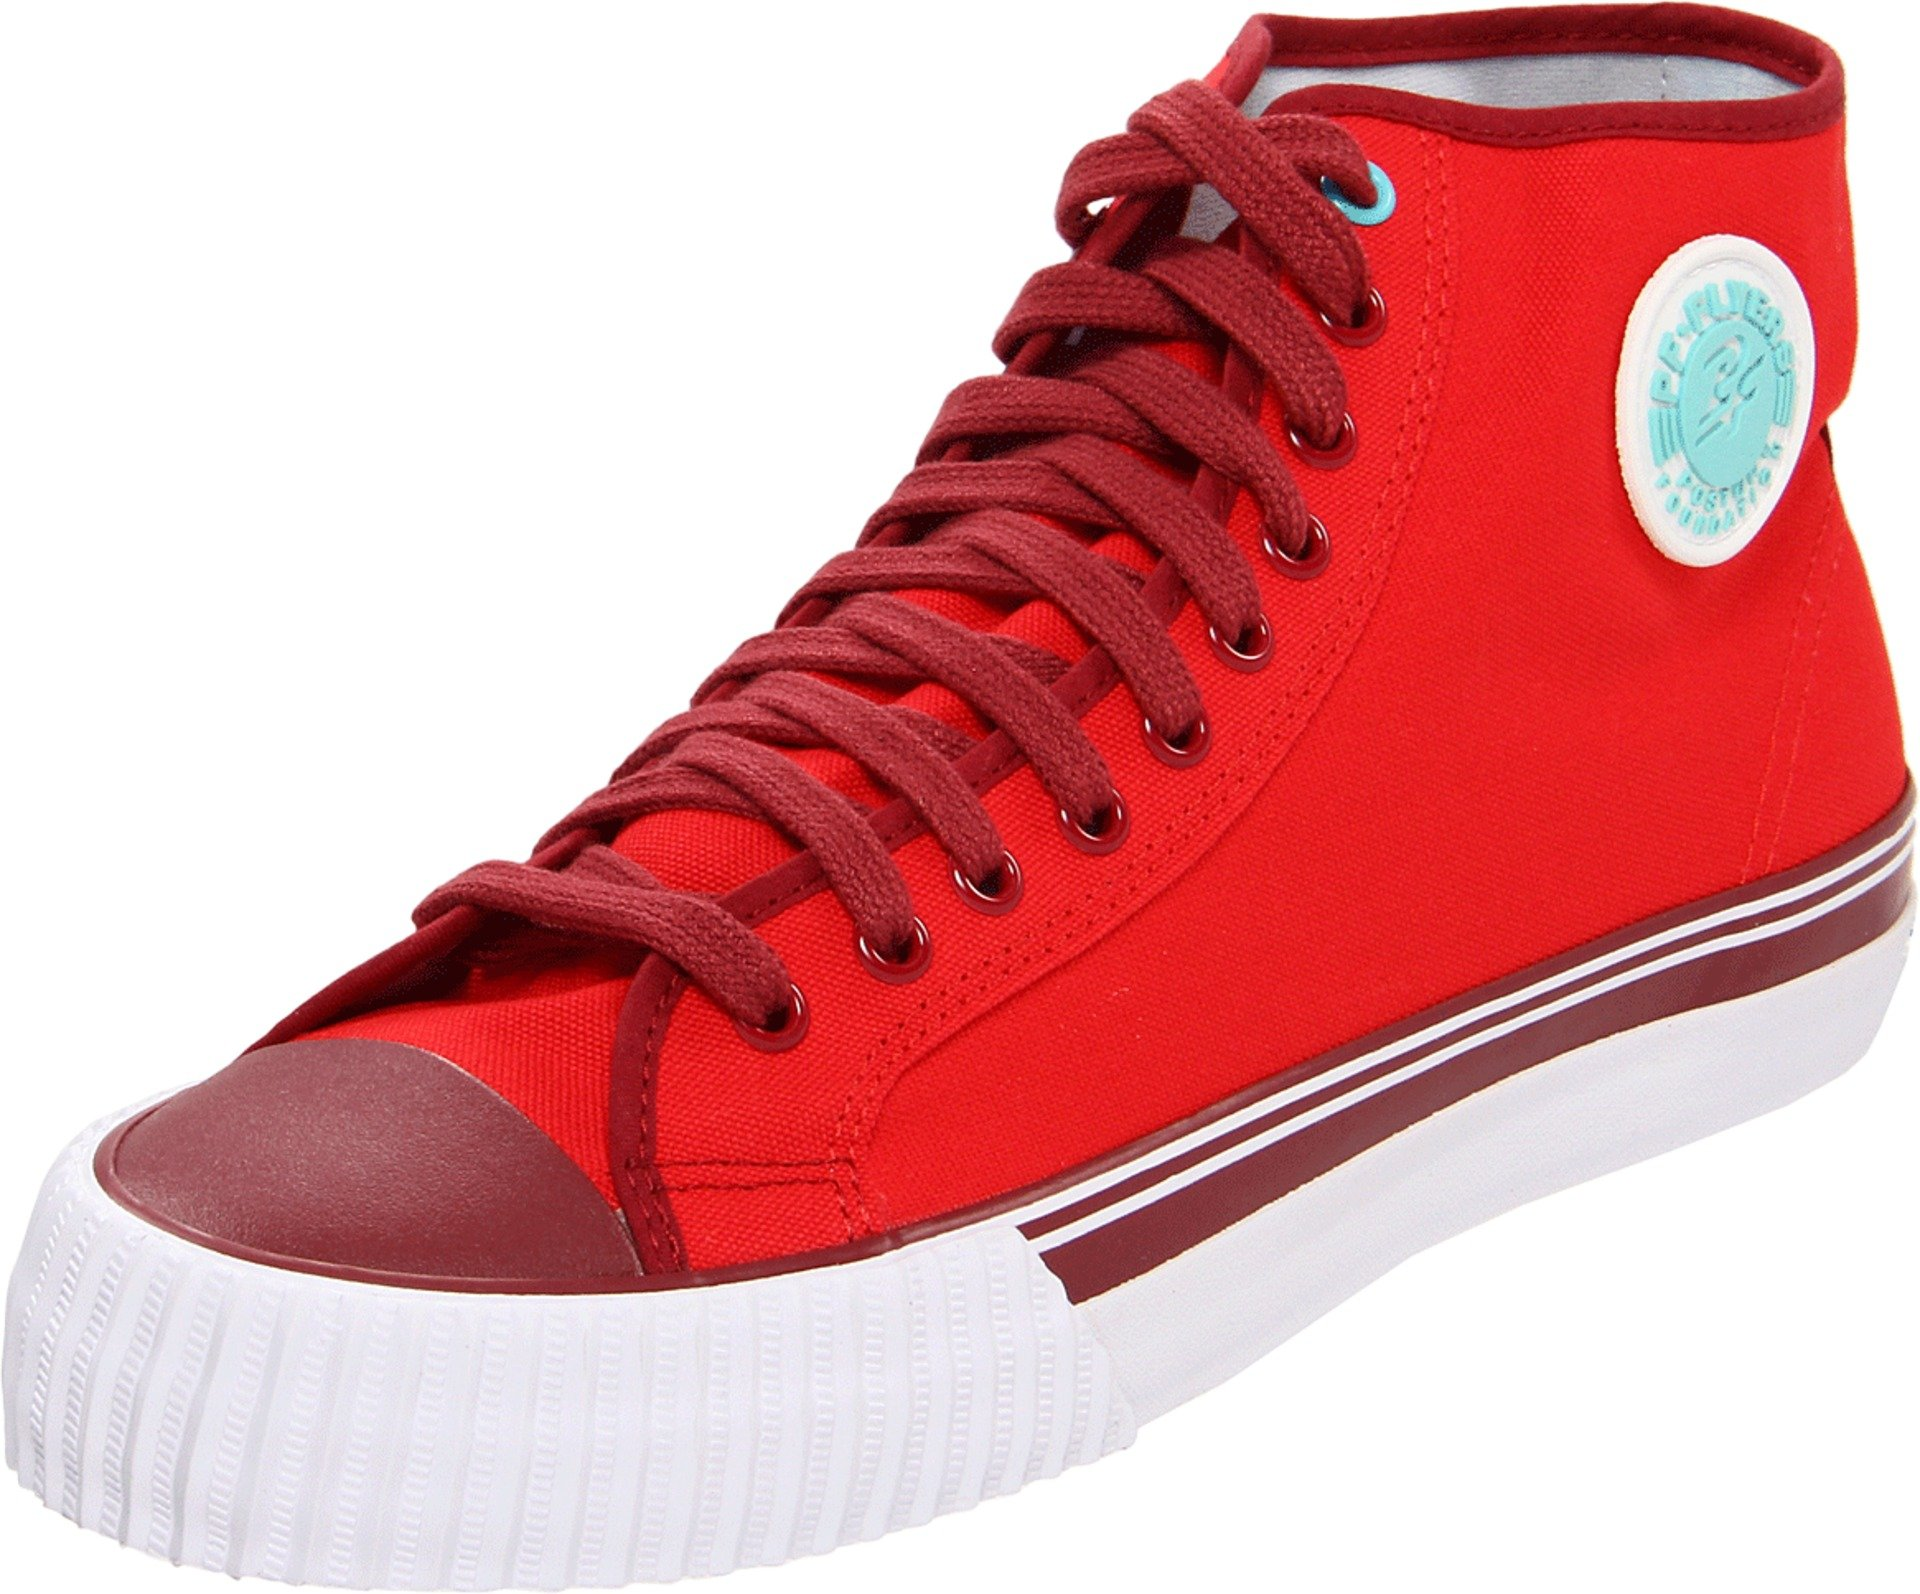 PF Flyers Center Hi Sneaker,Red,5.5 D US by PF Flyers